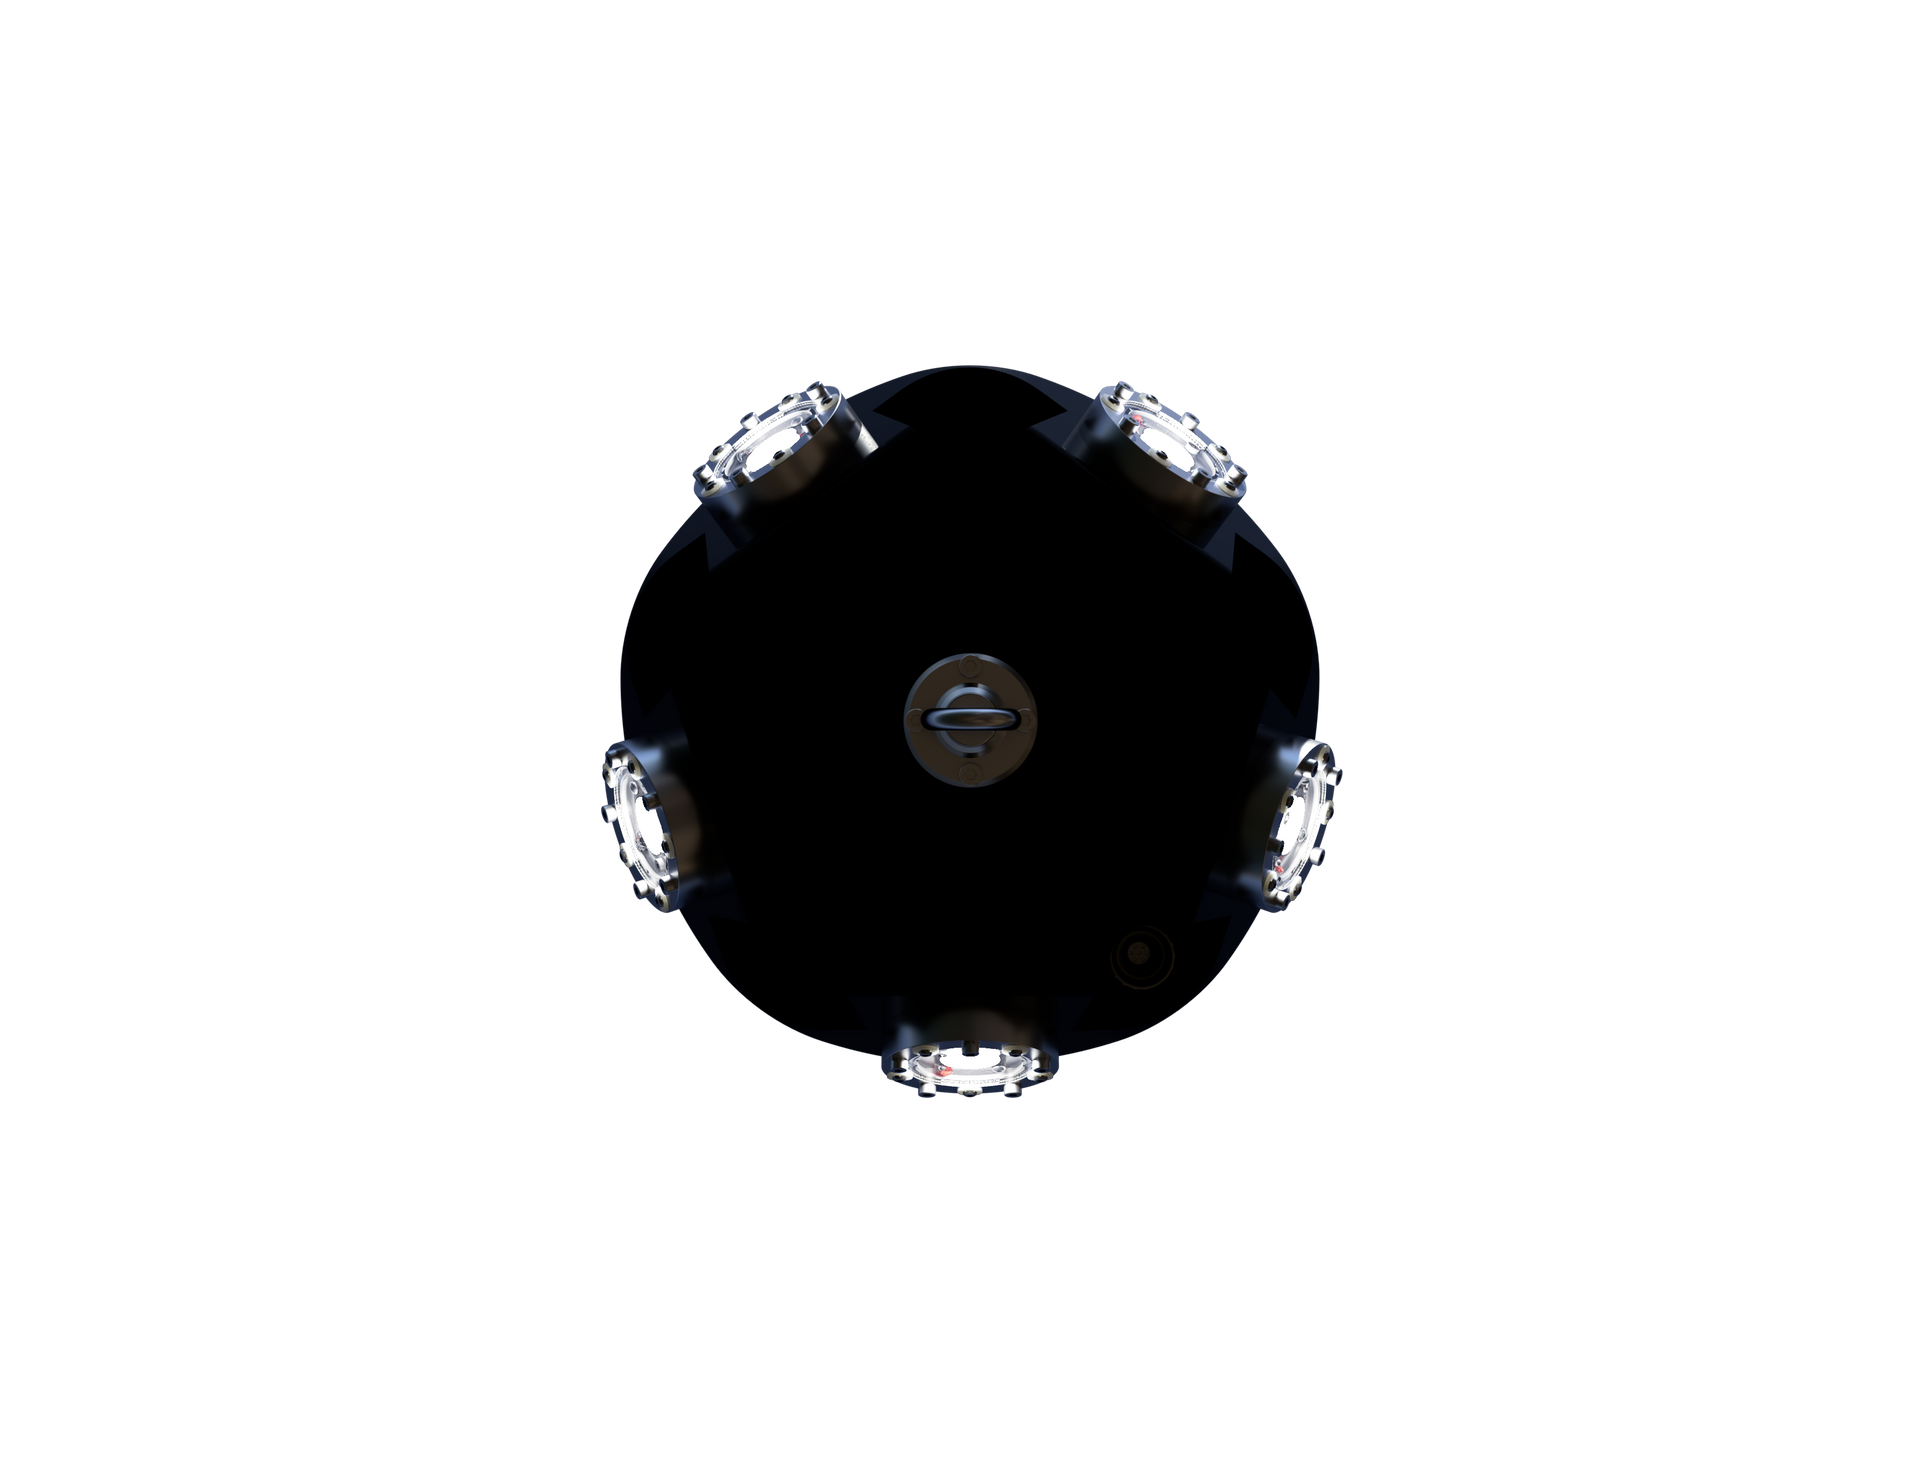 Quintus LED seen from below